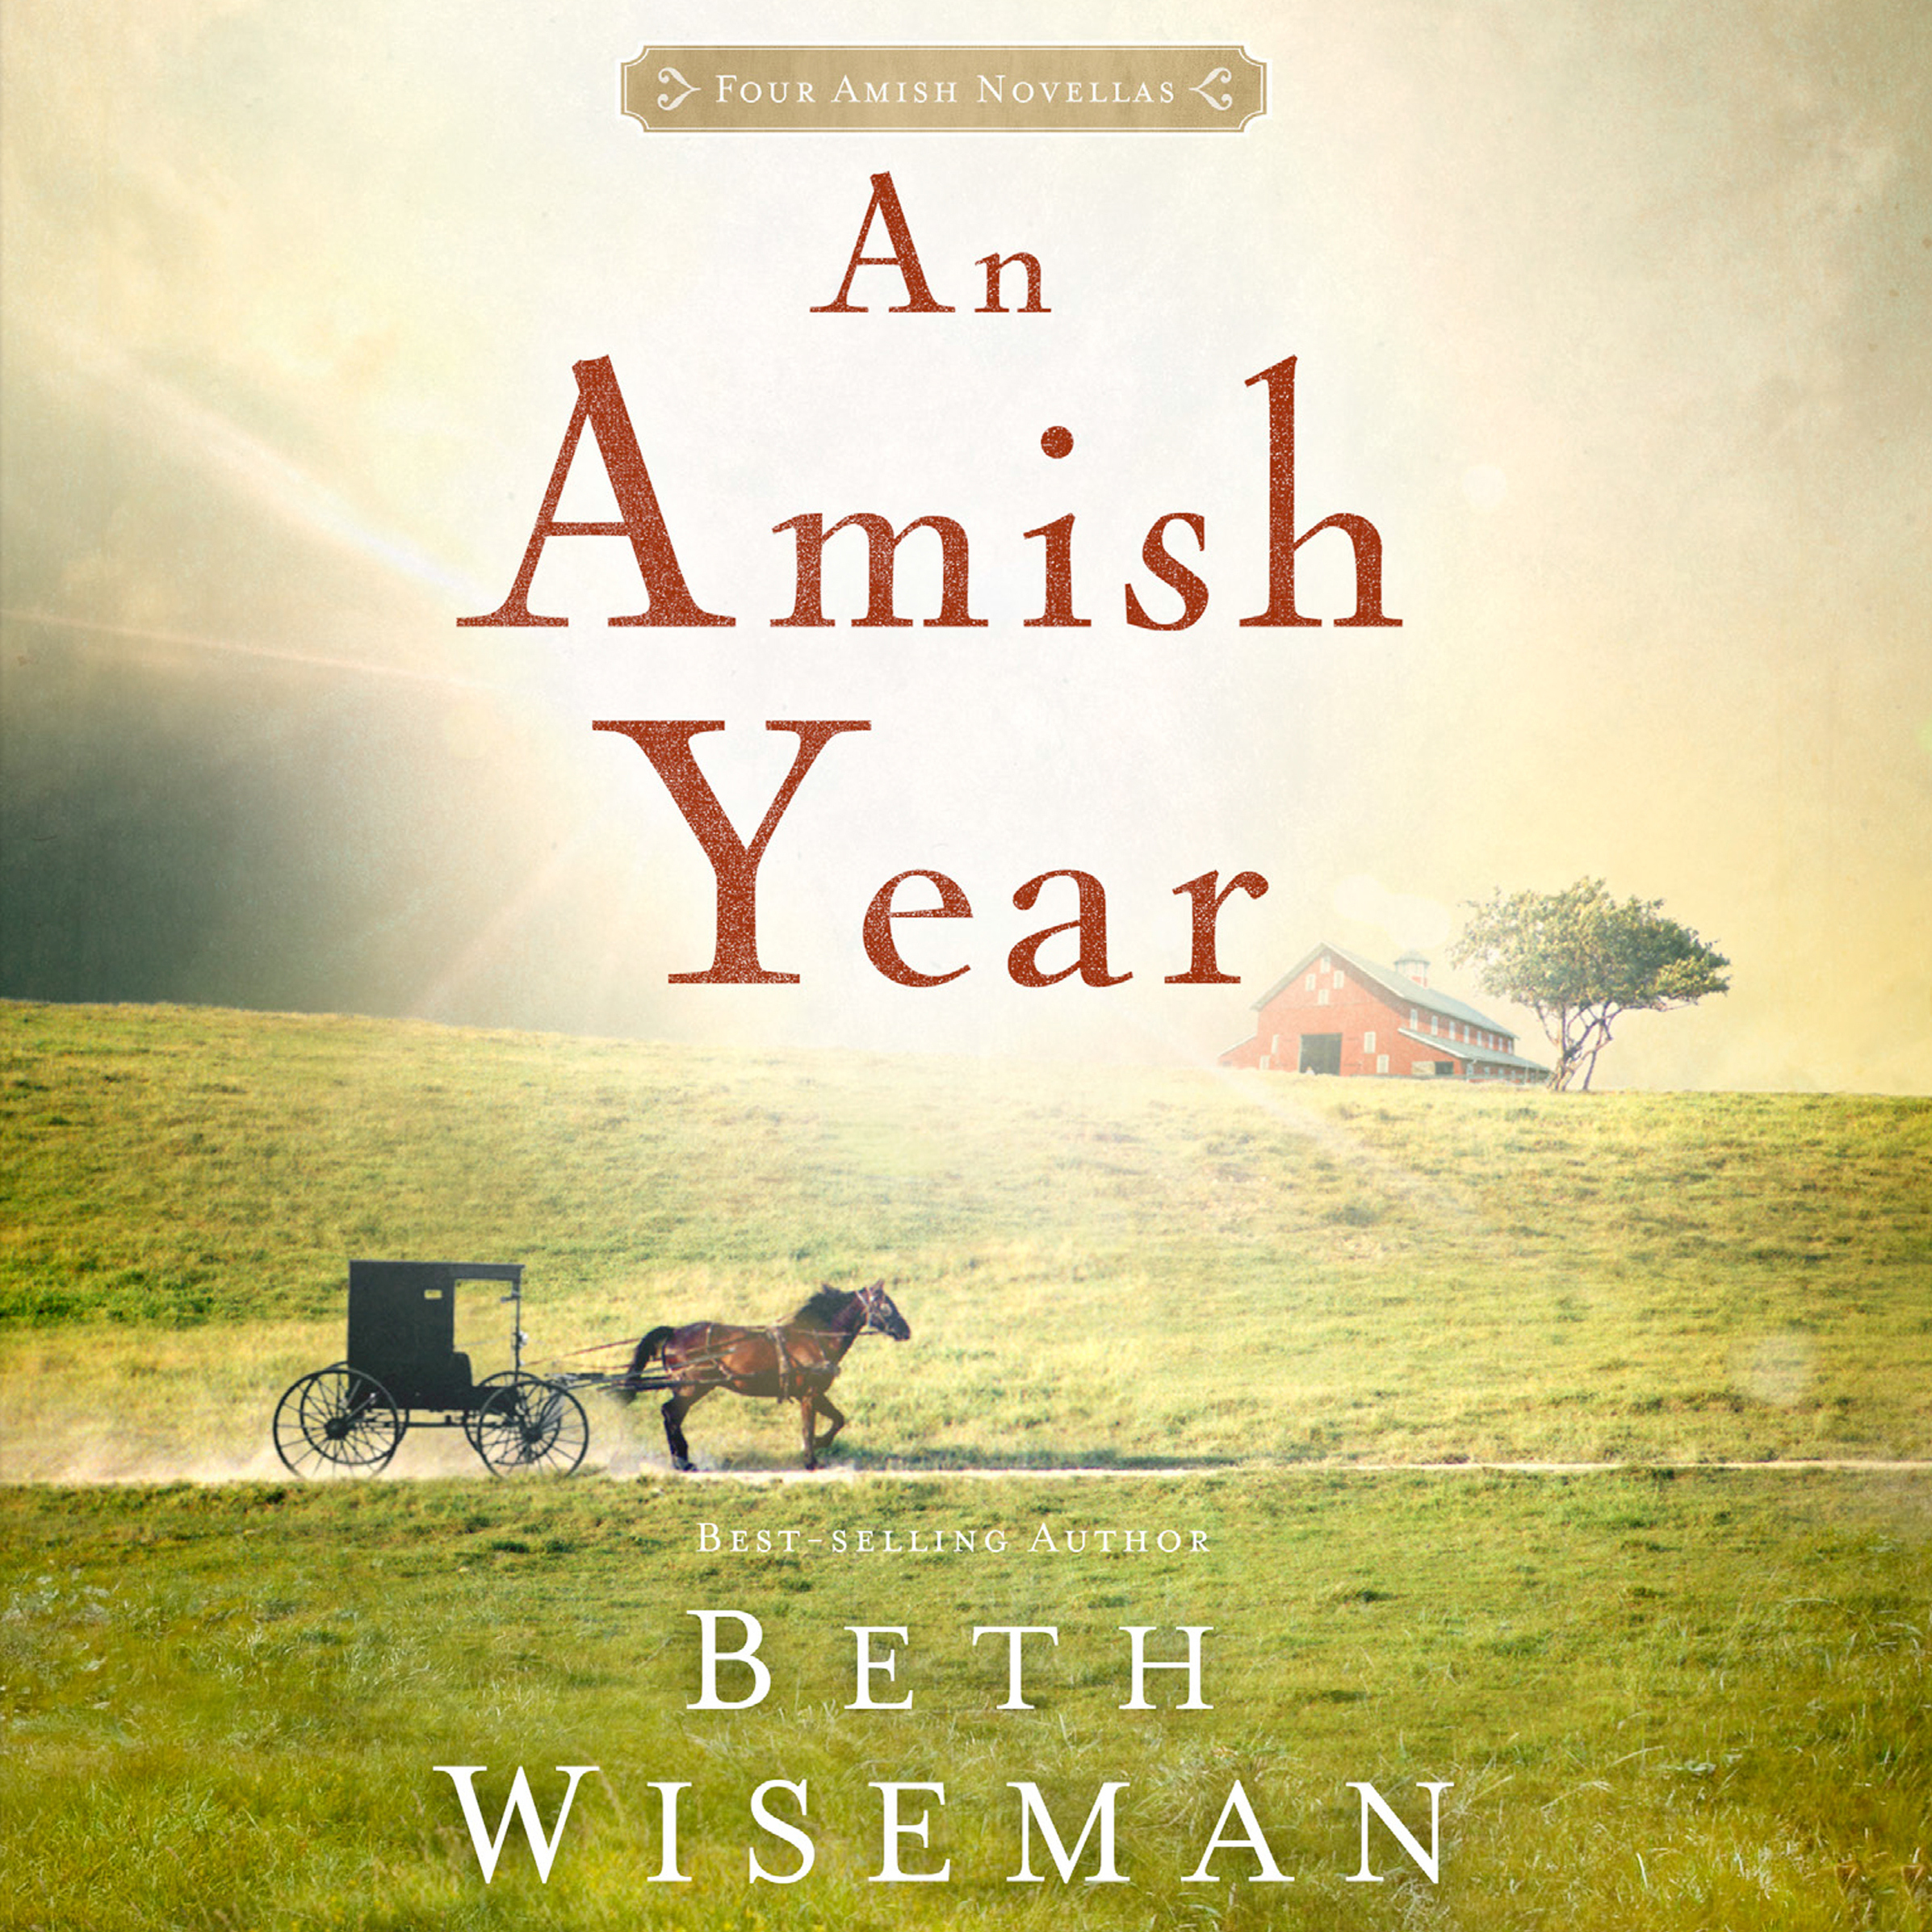 Printable An Amish Year: Four Amish Novellas Audiobook Cover Art